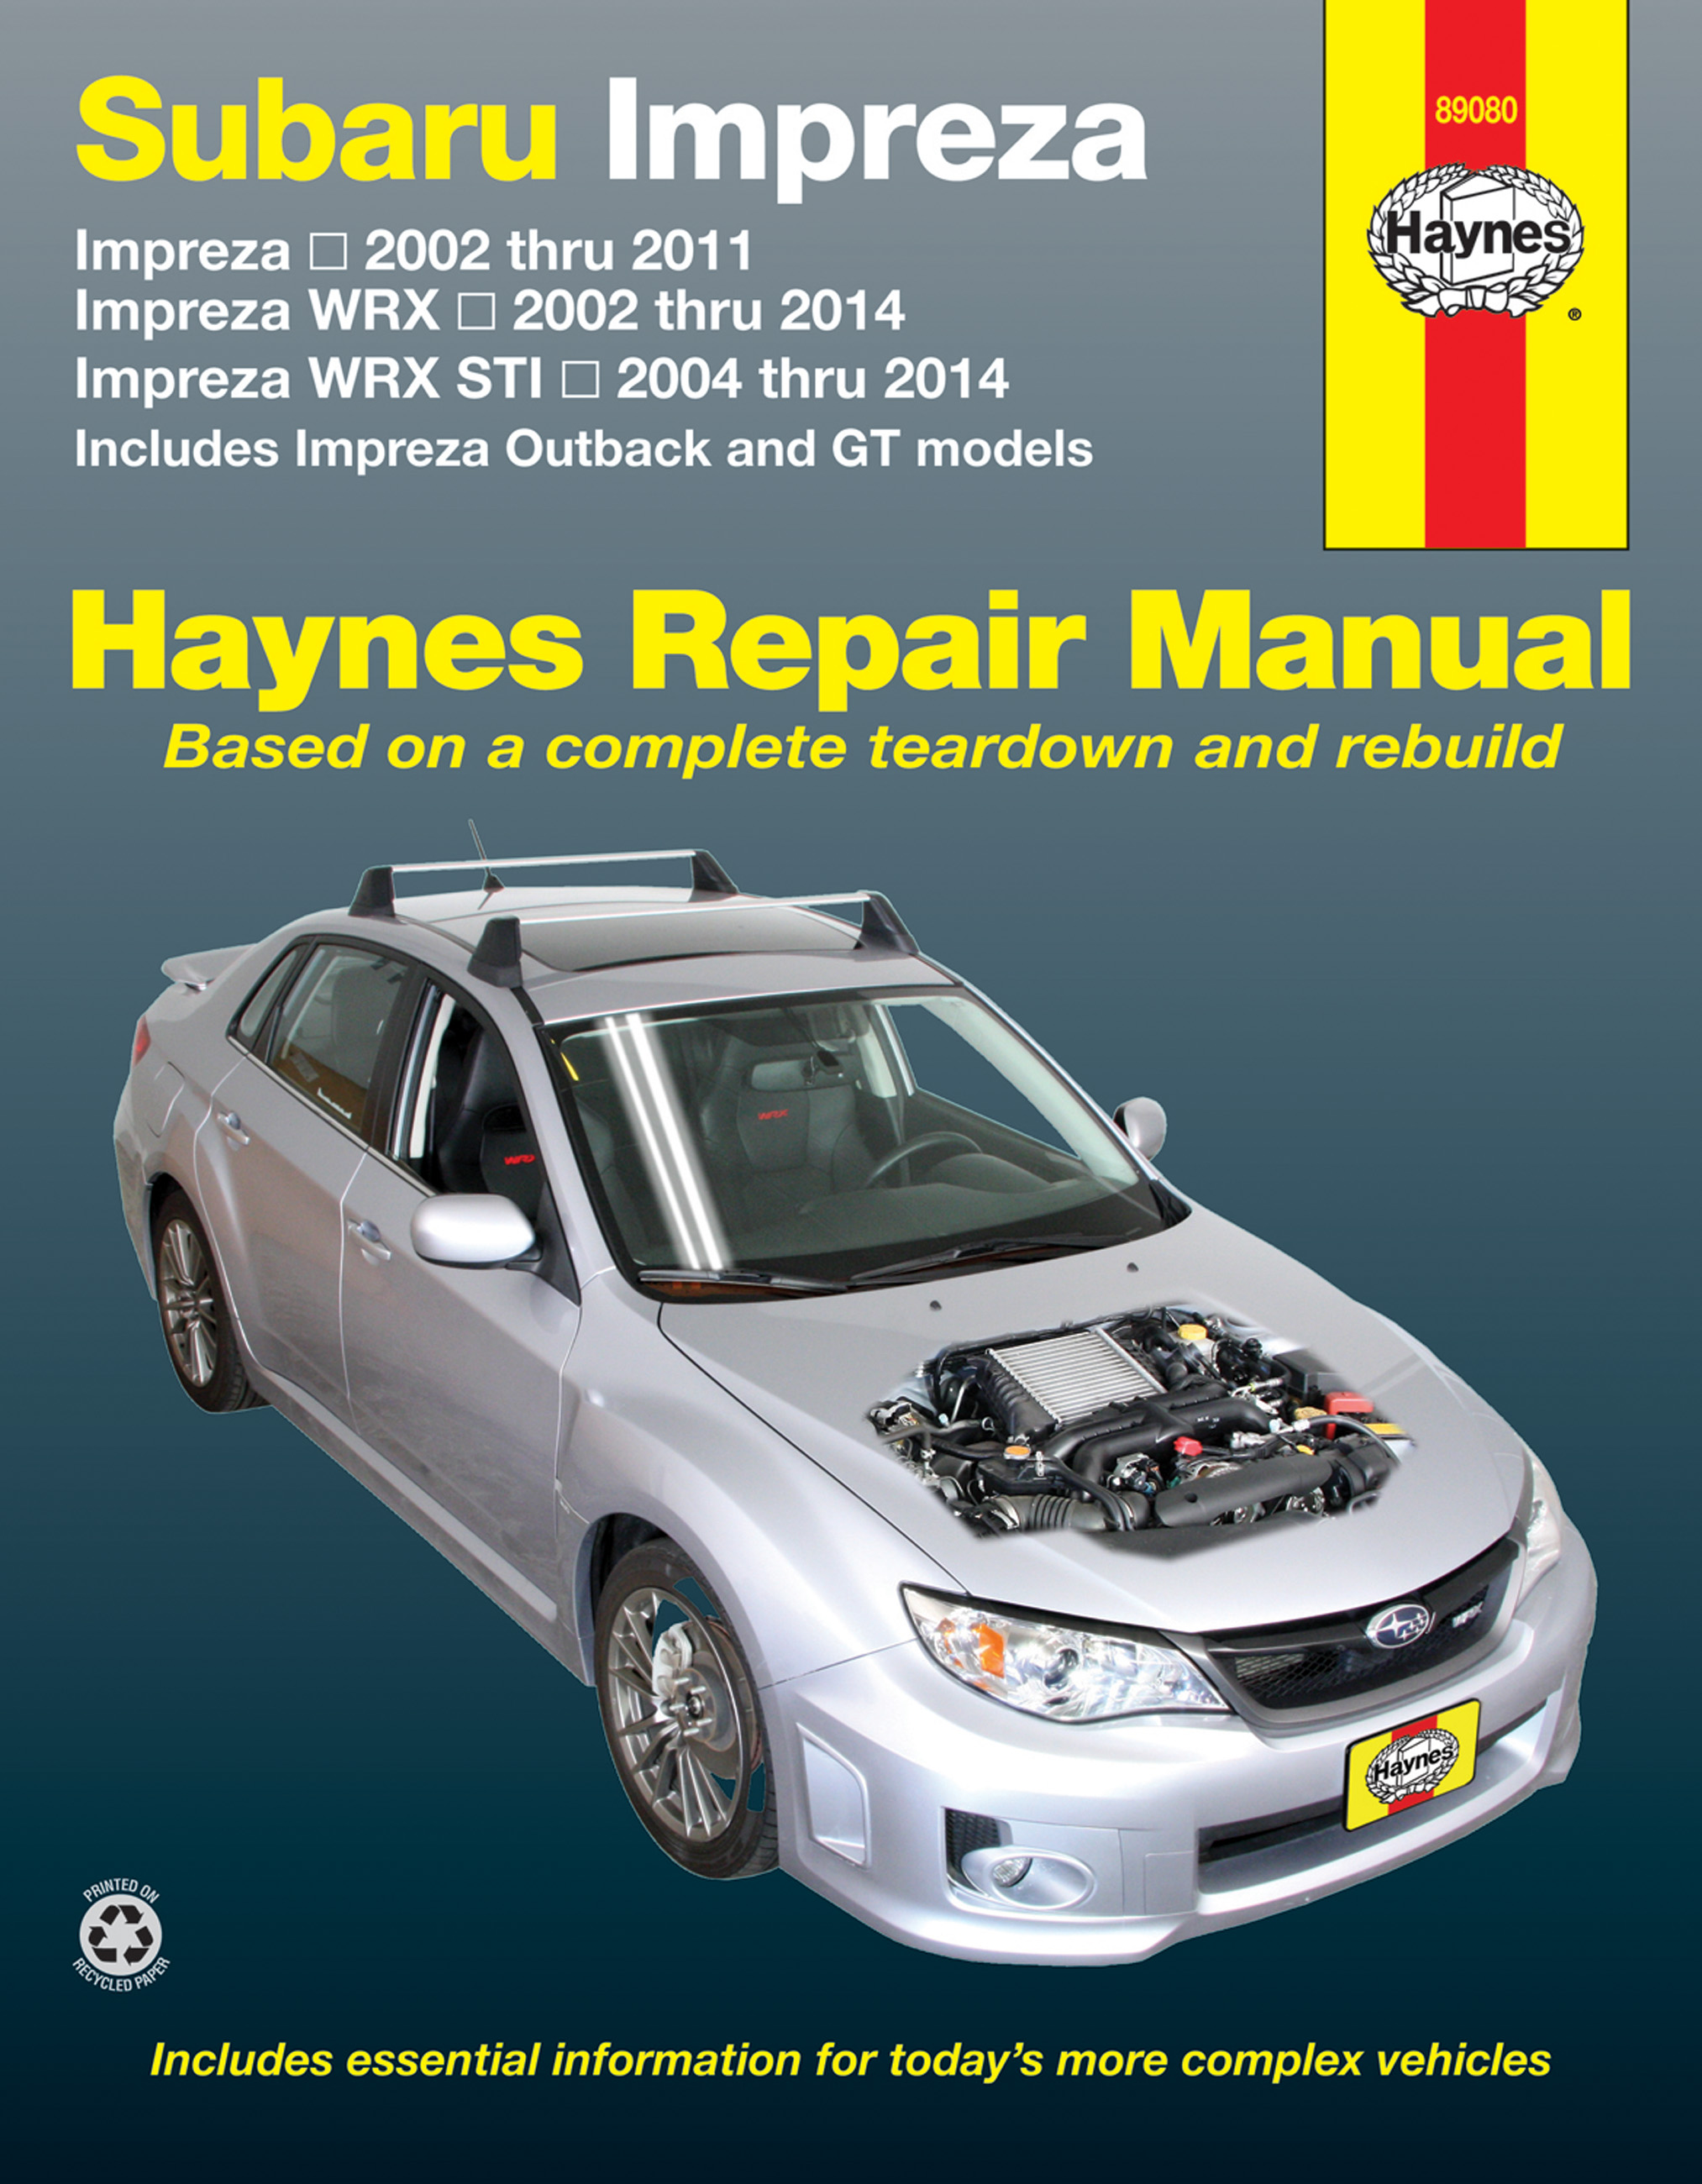 subaru impreza workshop repair service manual haynes chilton wrx wrx rh  ebay co uk subaru impreza service manual 2008 subaru impreza owners manual